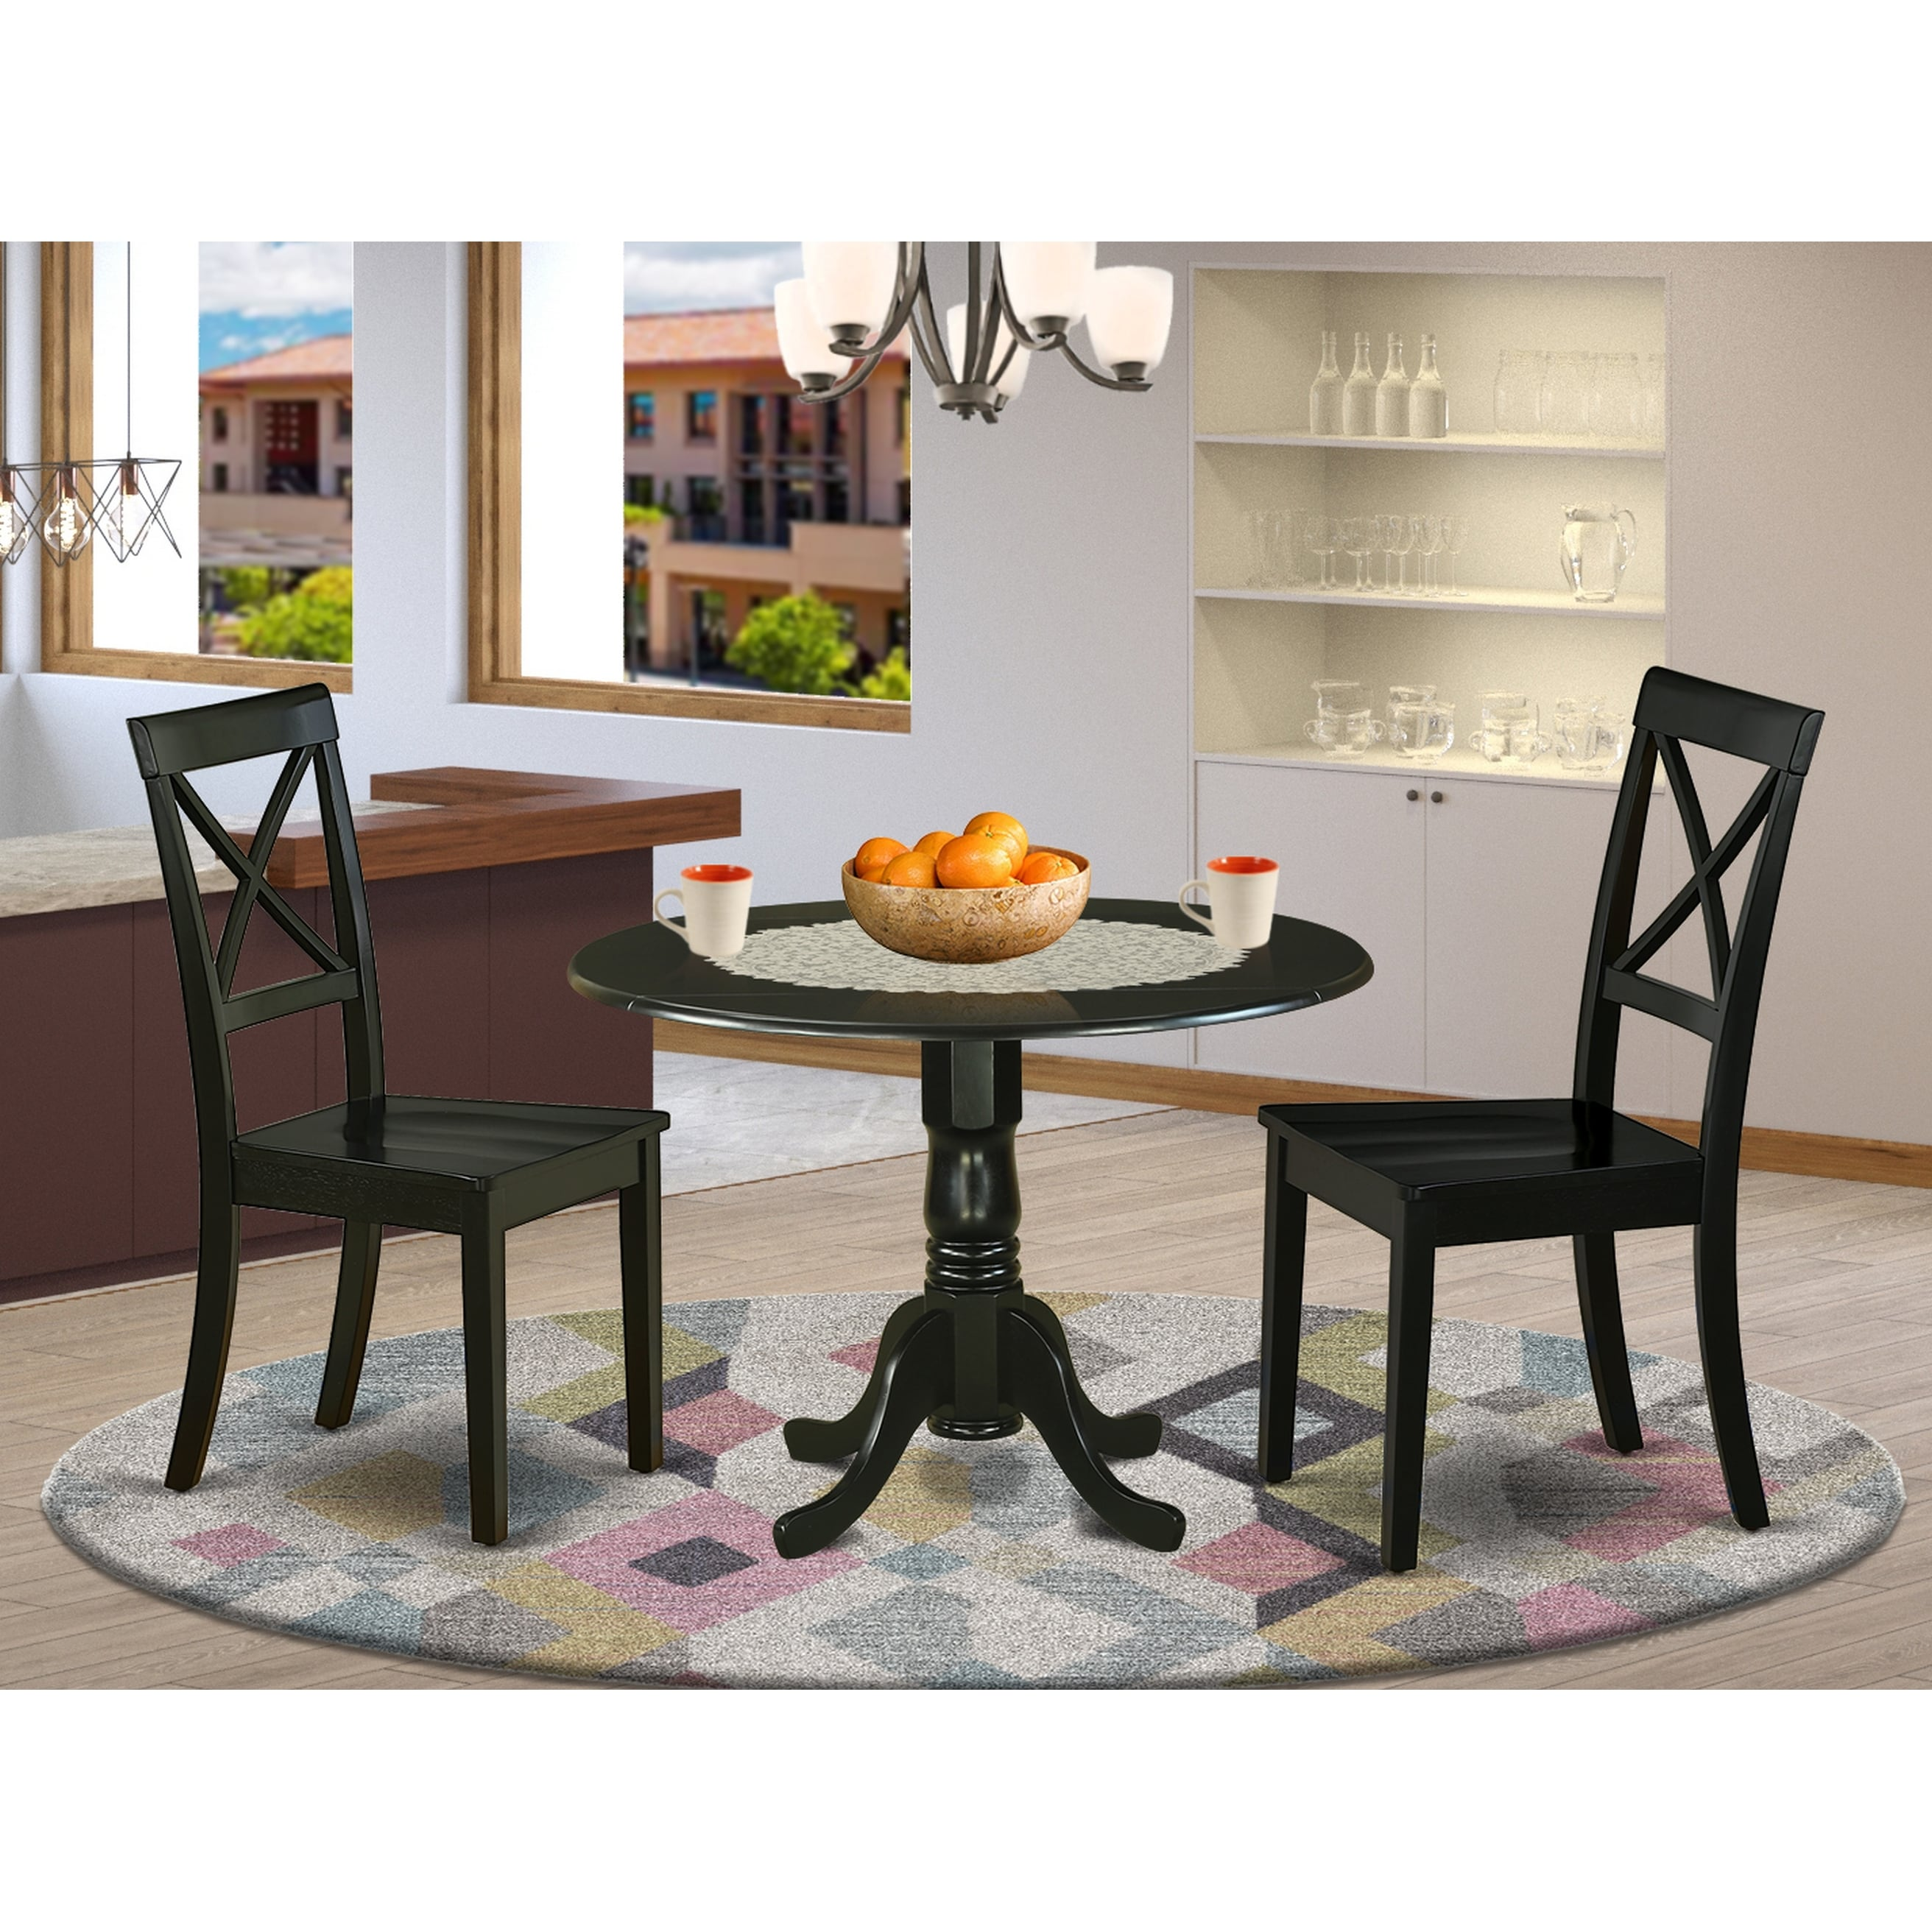 Round 42 Inch Table And Wood Seat Chairs Kitchen Set In Black Finish Number Of Chairs Option Overstock 28712125